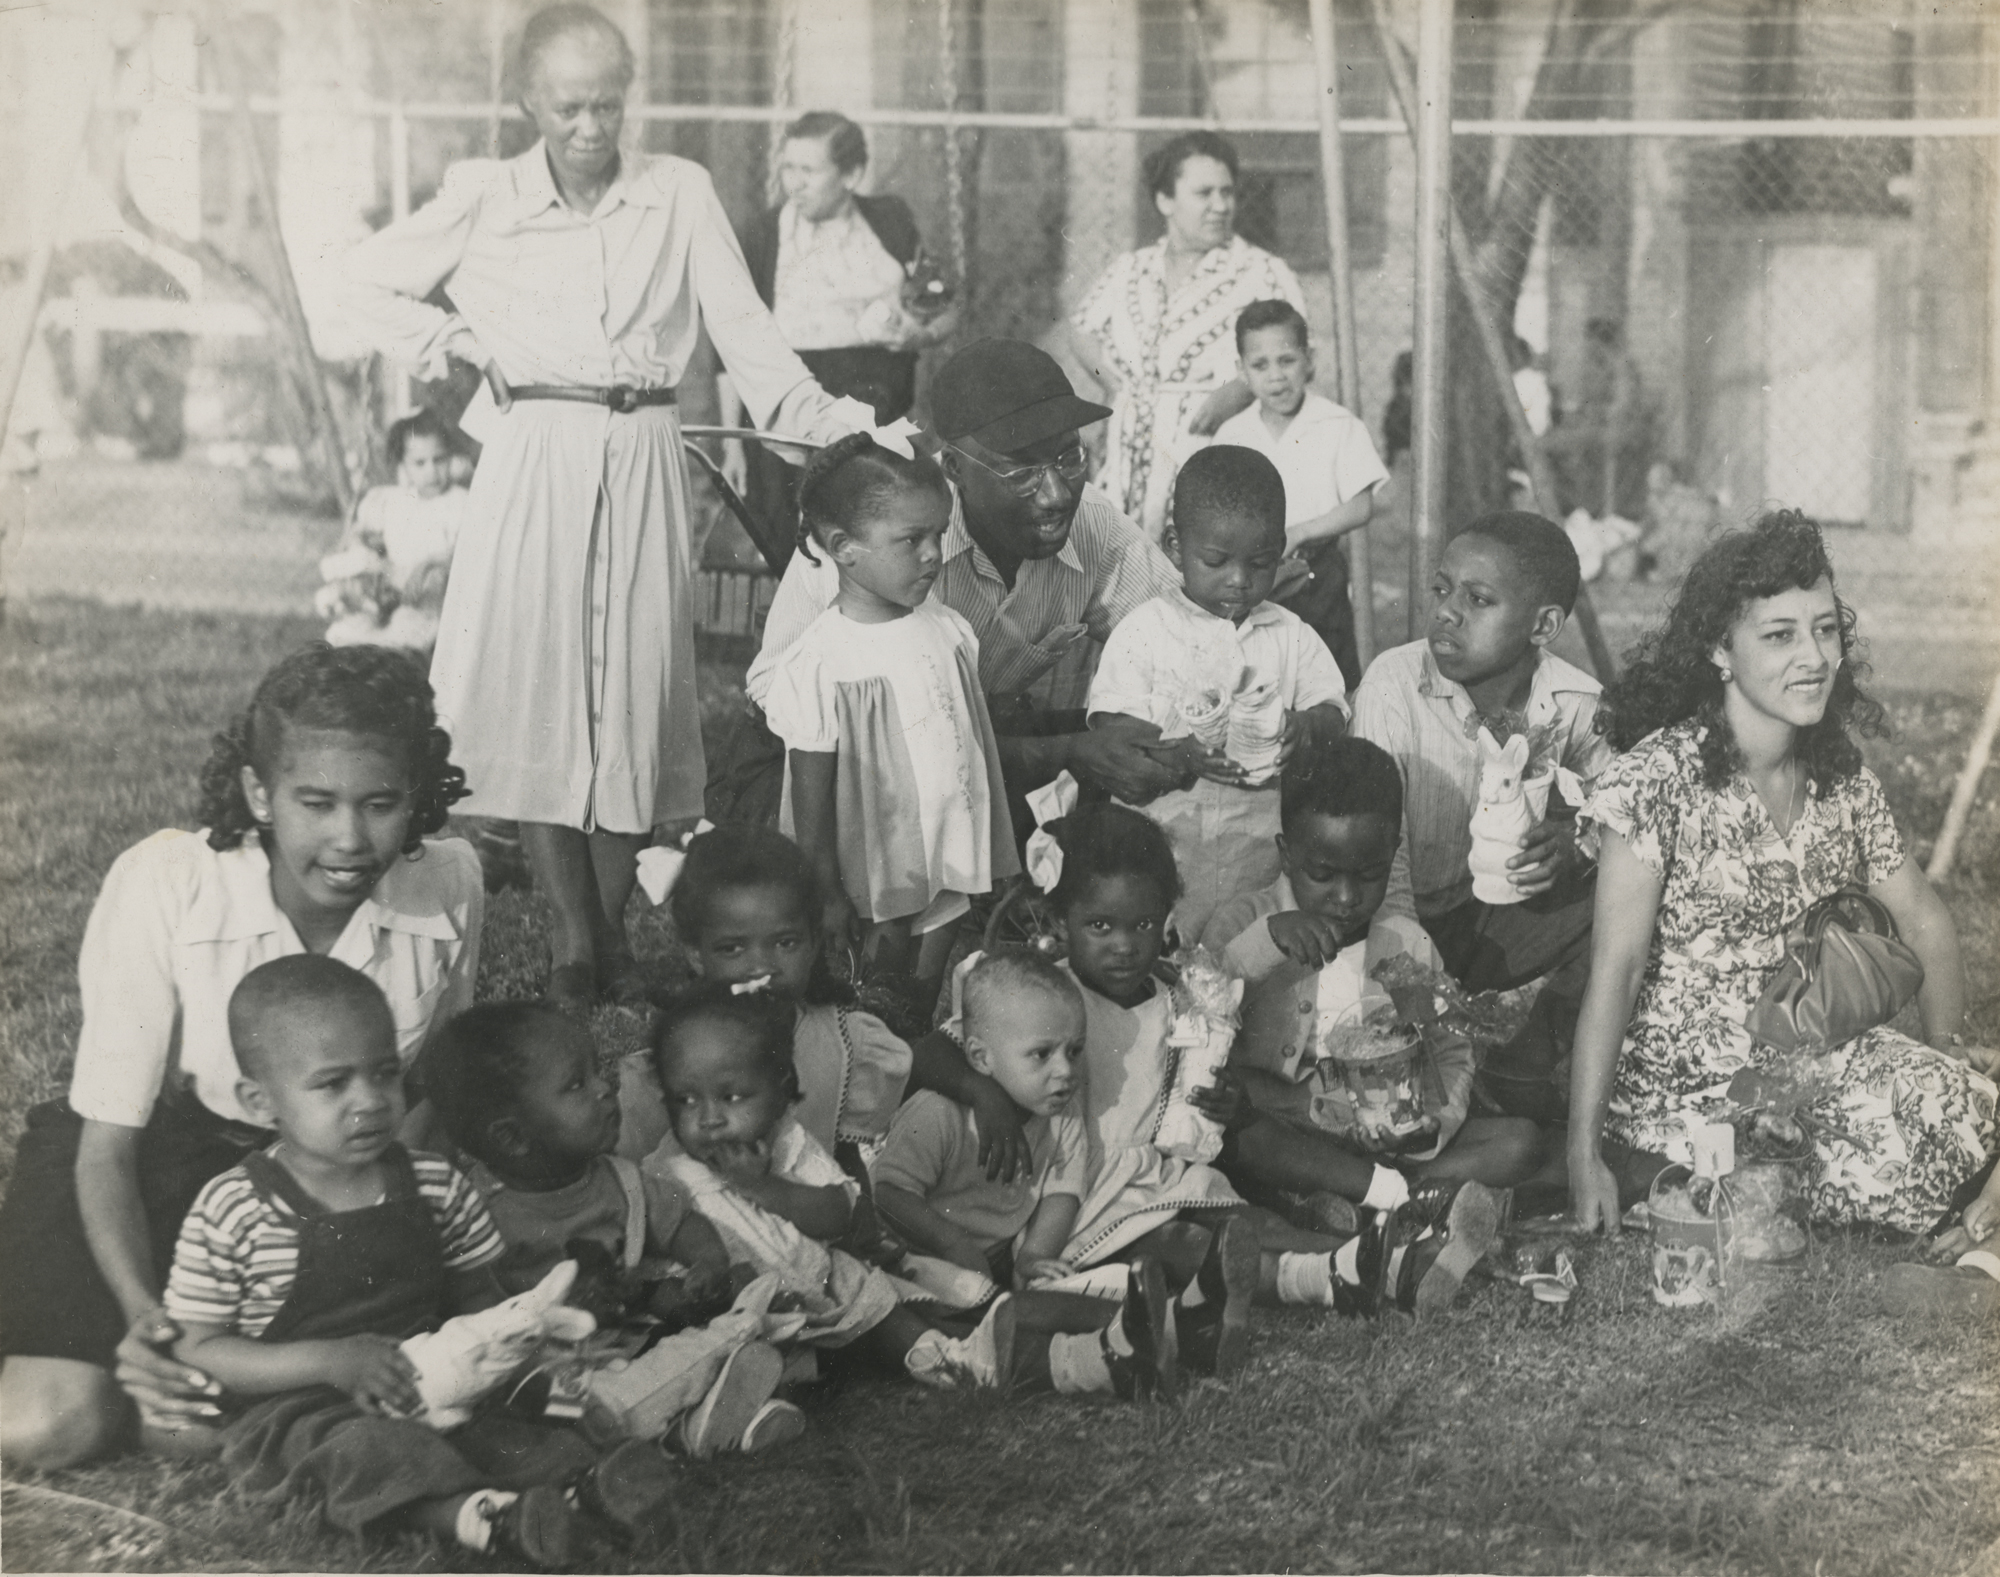 Women and children after receiving their Easter gifts. New Orleans (La.) Recreation Dept. Scrapbook photographs, 1947-1948